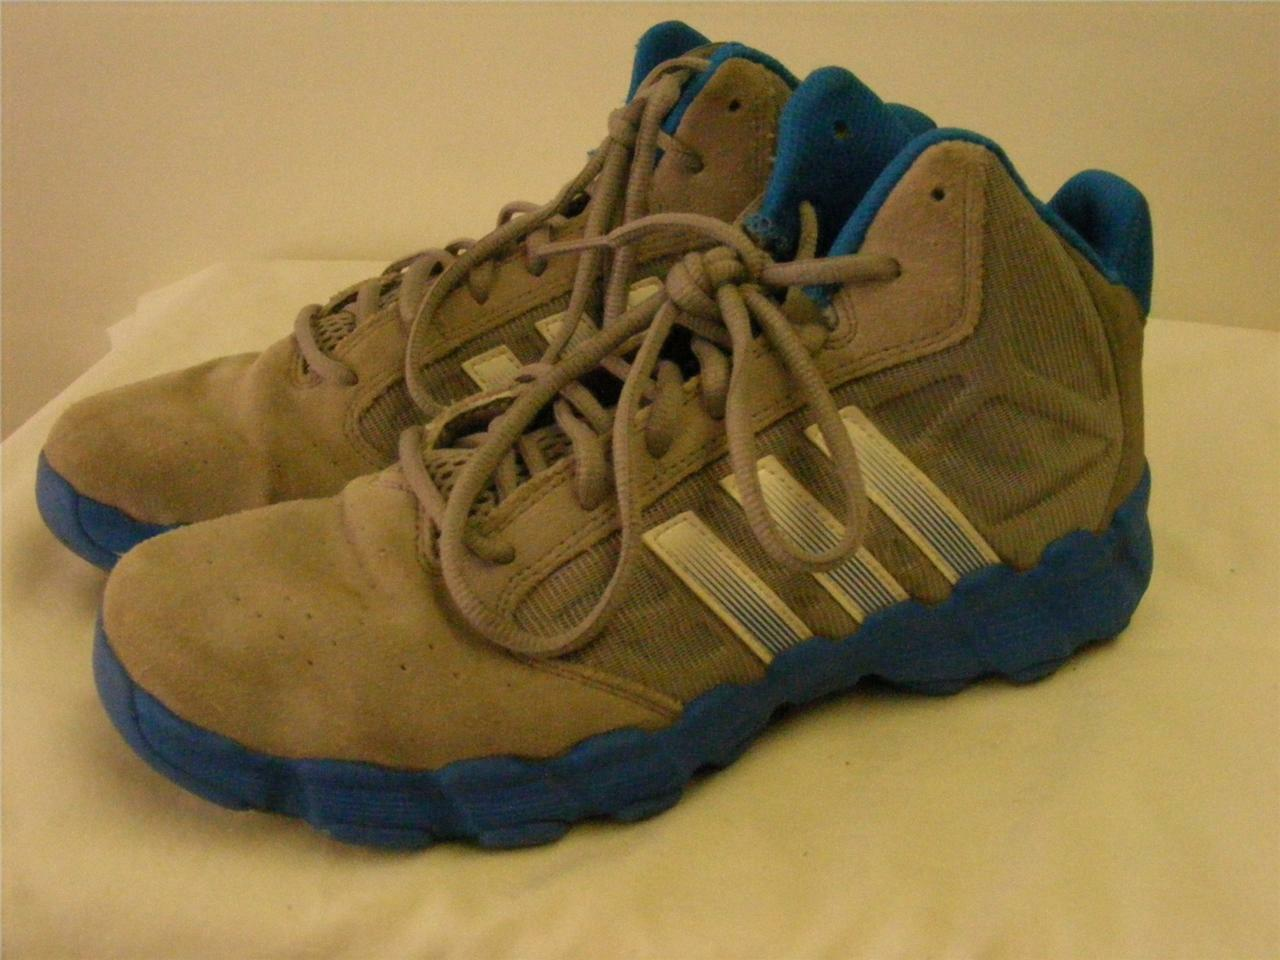 mens ADIDAS leather blue gray lightweight hi top basketball shoes 7 CLEAN Cheap and beautiful fashion